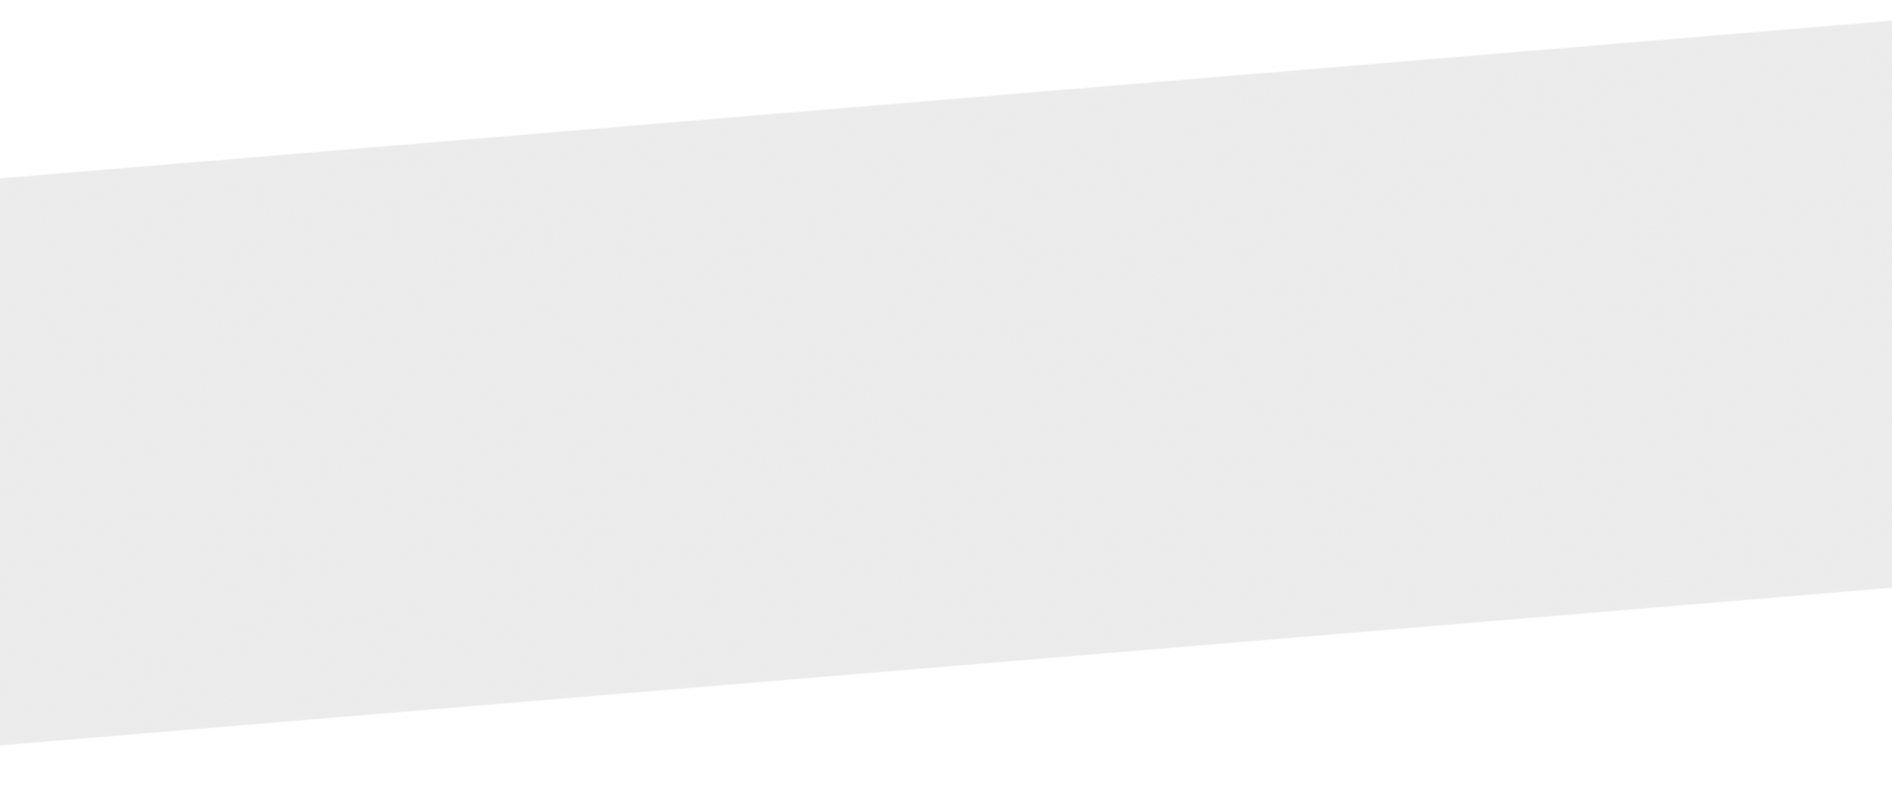 BACKGROUND_GRAY.png